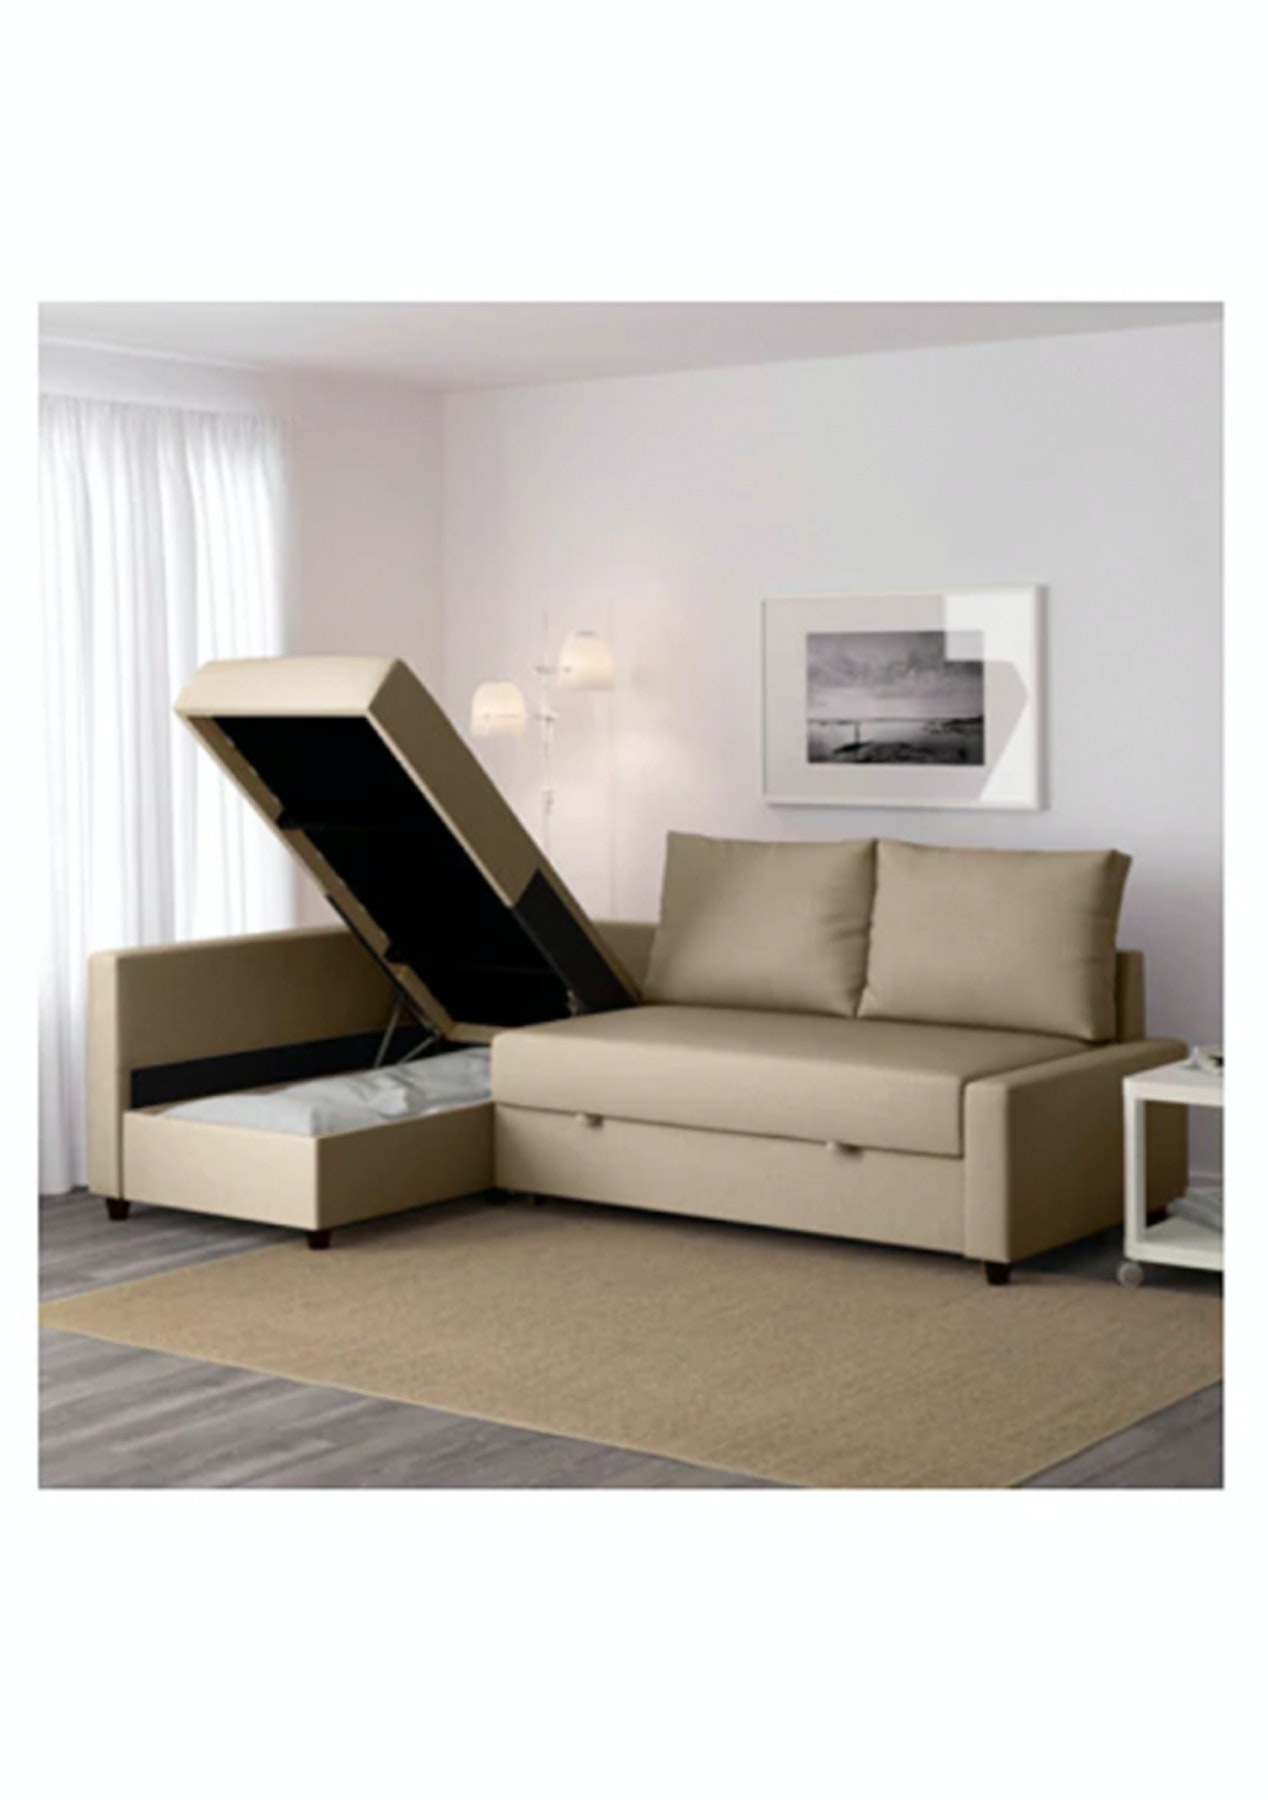 Stupendous Ikea Friheten Corner Sofa Bed With Storage Skiftebo Beige Alphanode Cool Chair Designs And Ideas Alphanodeonline